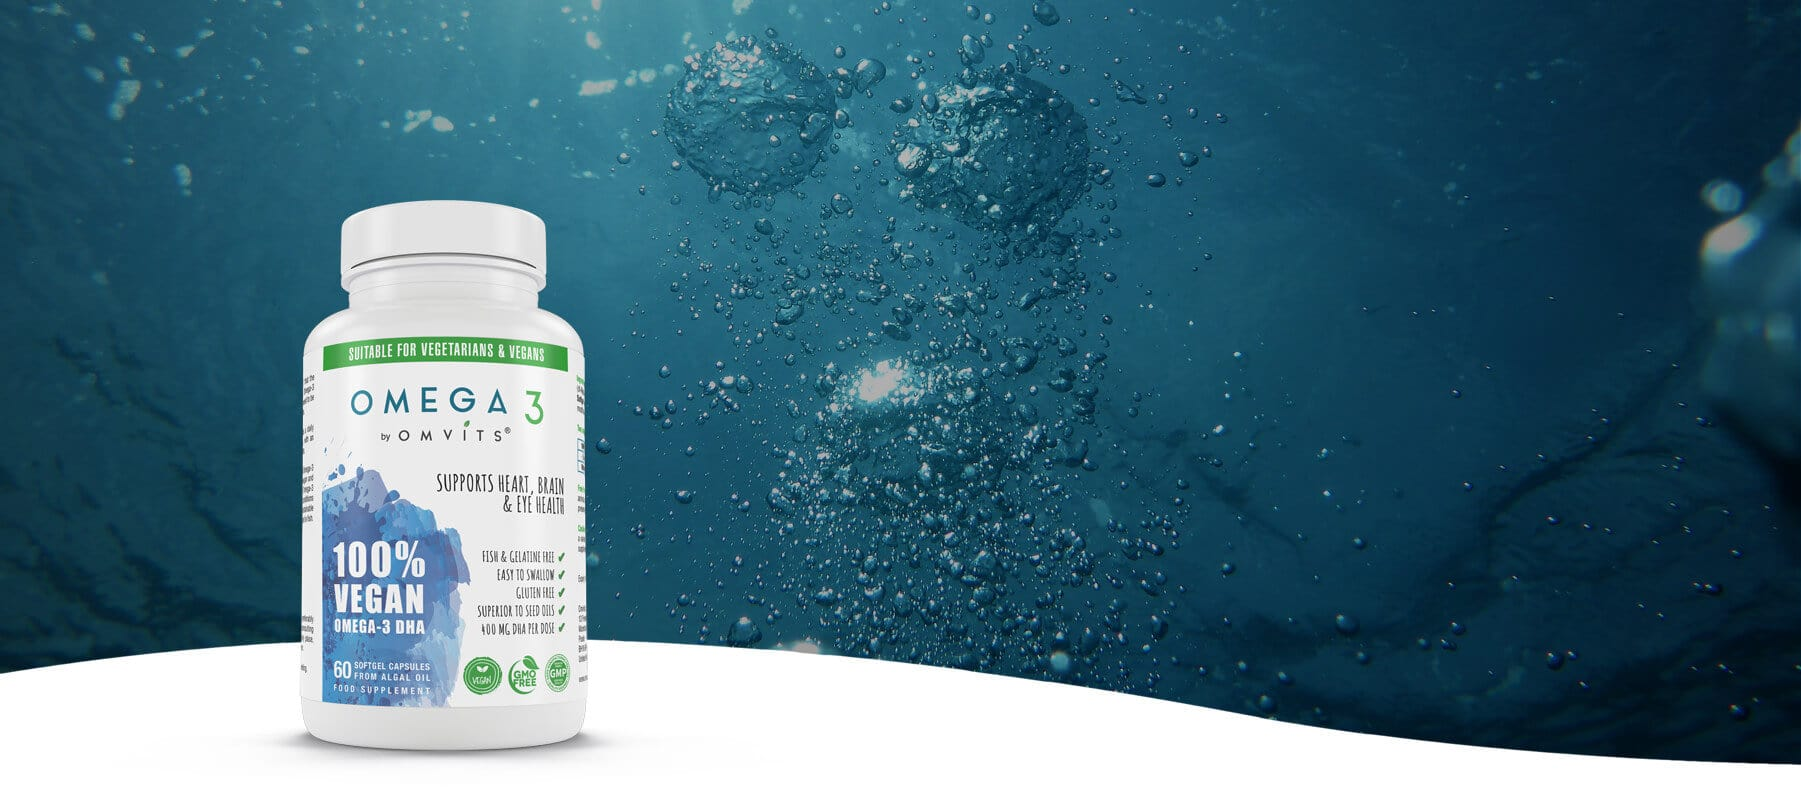 omvits vegan omega-3 against a background of the sea